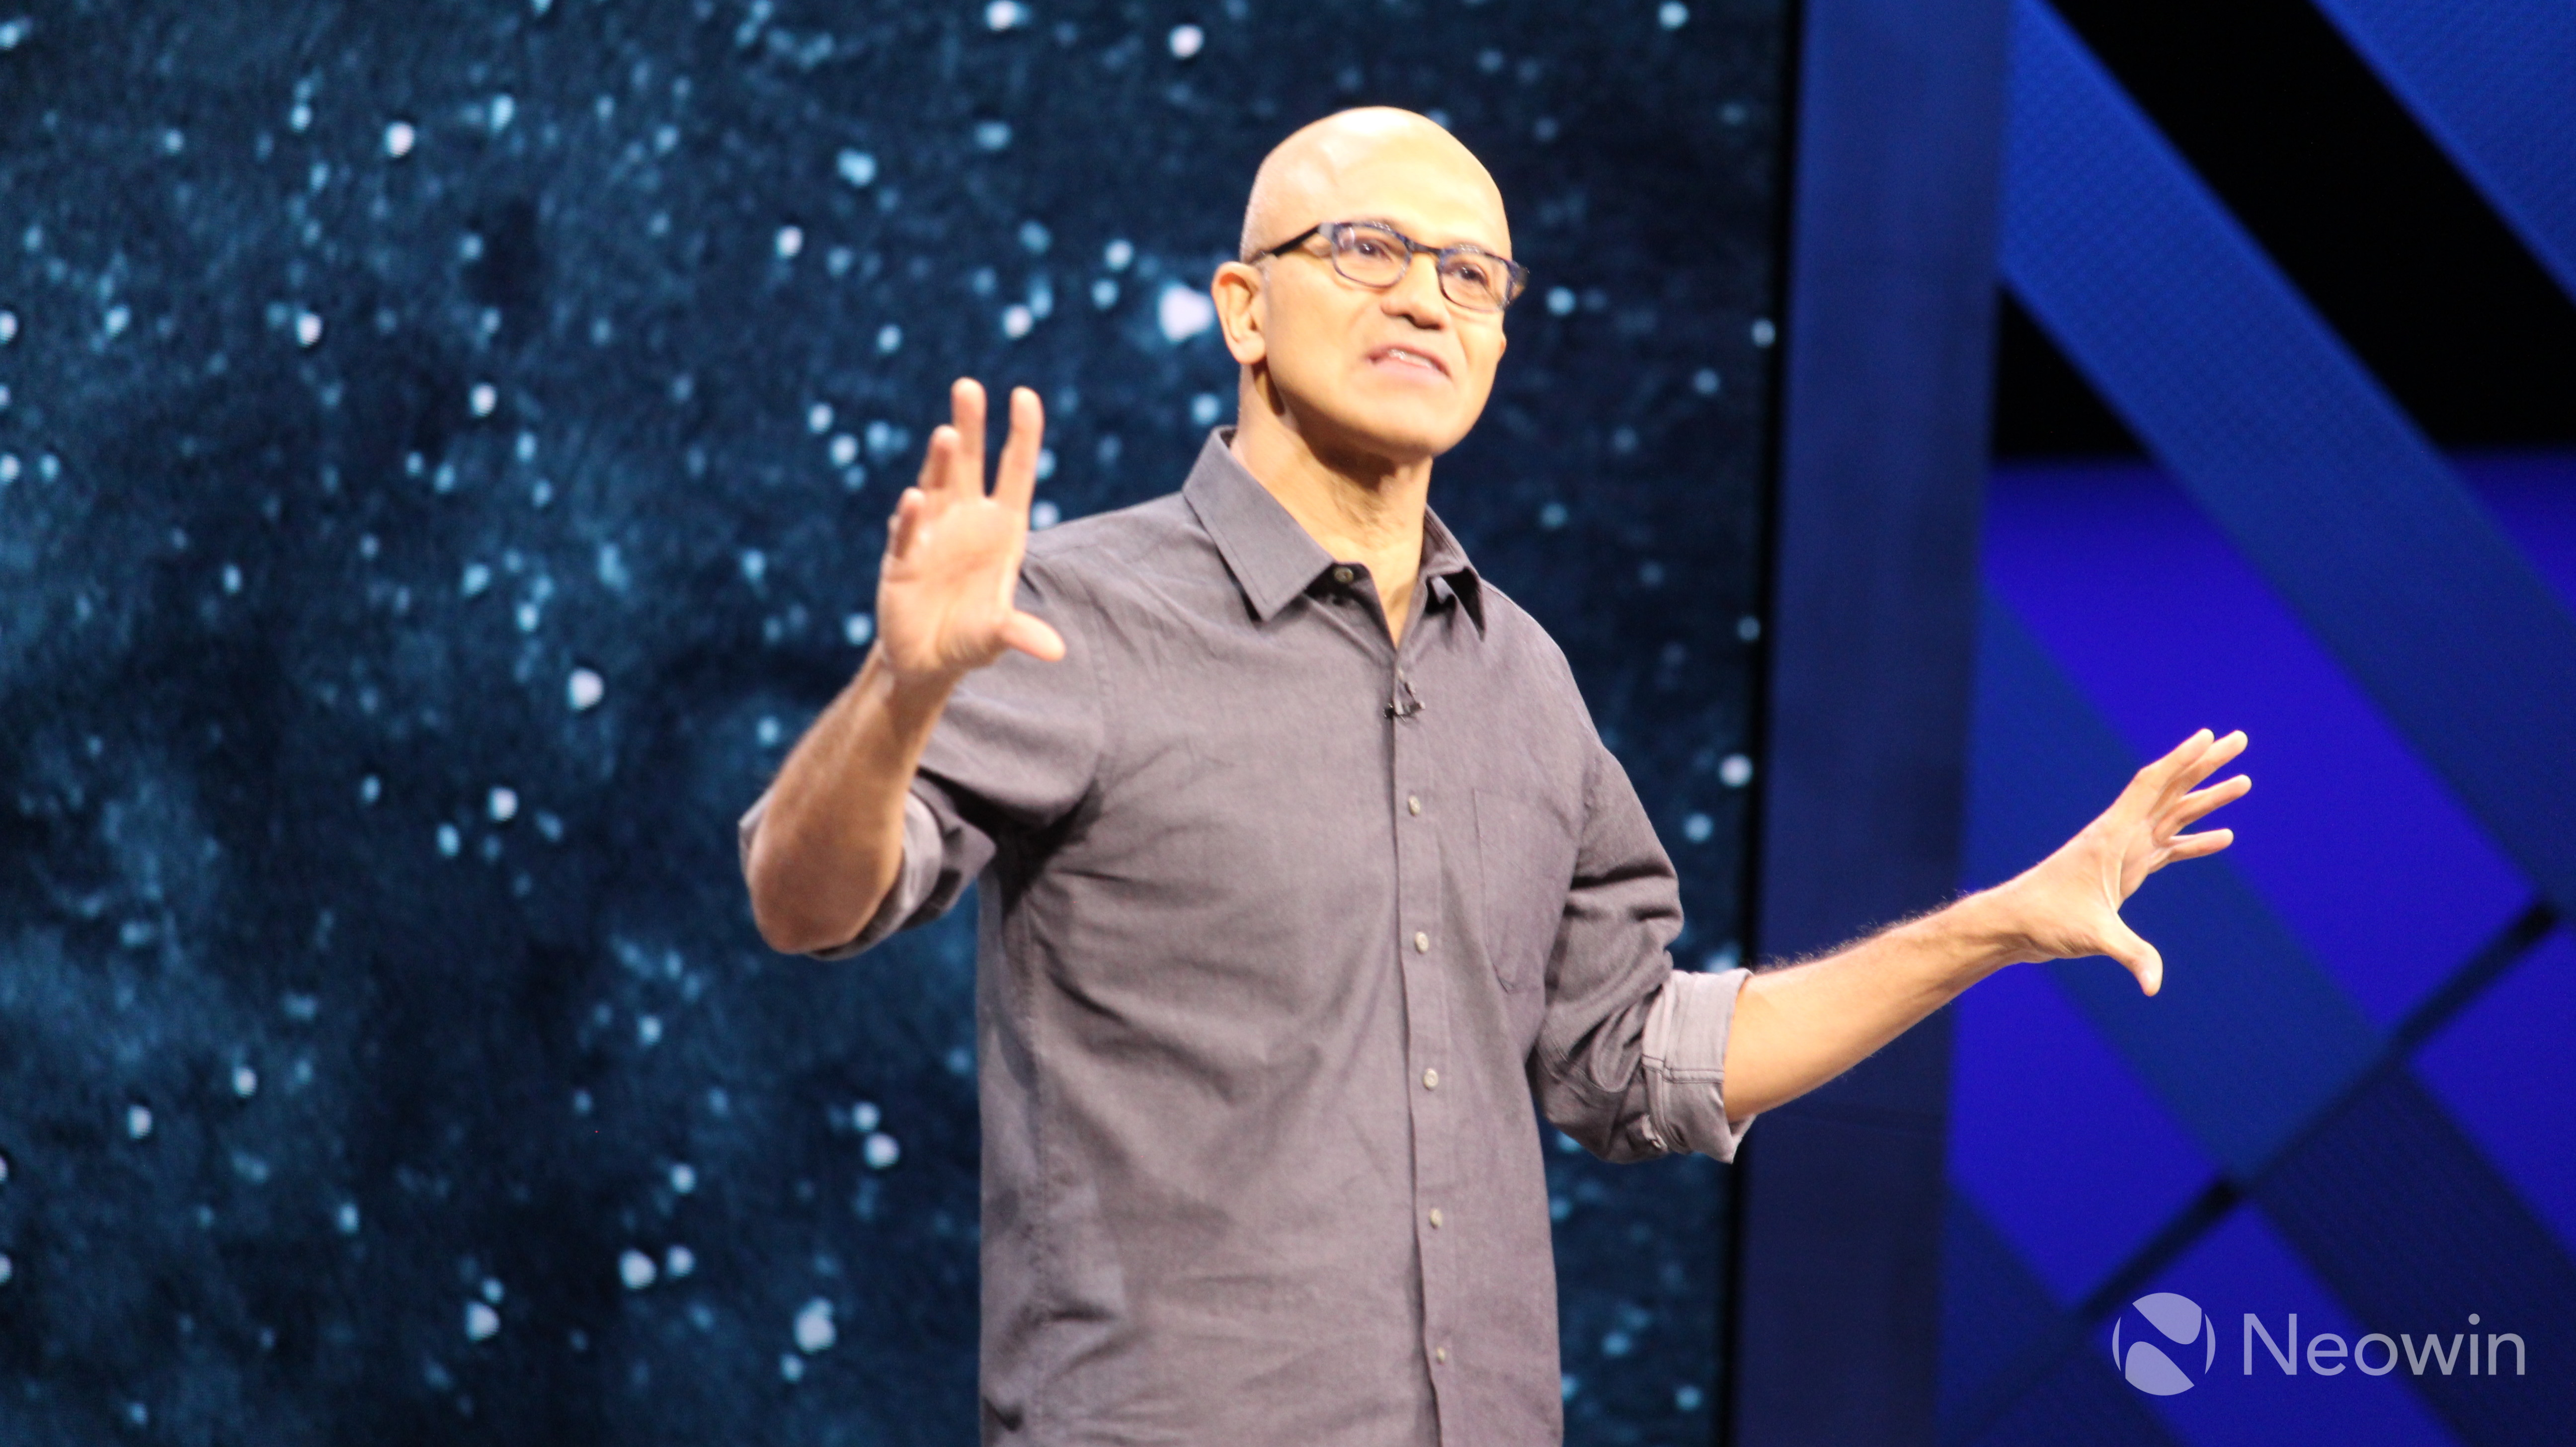 Many Microsoft employees are unsatisfied with their pay